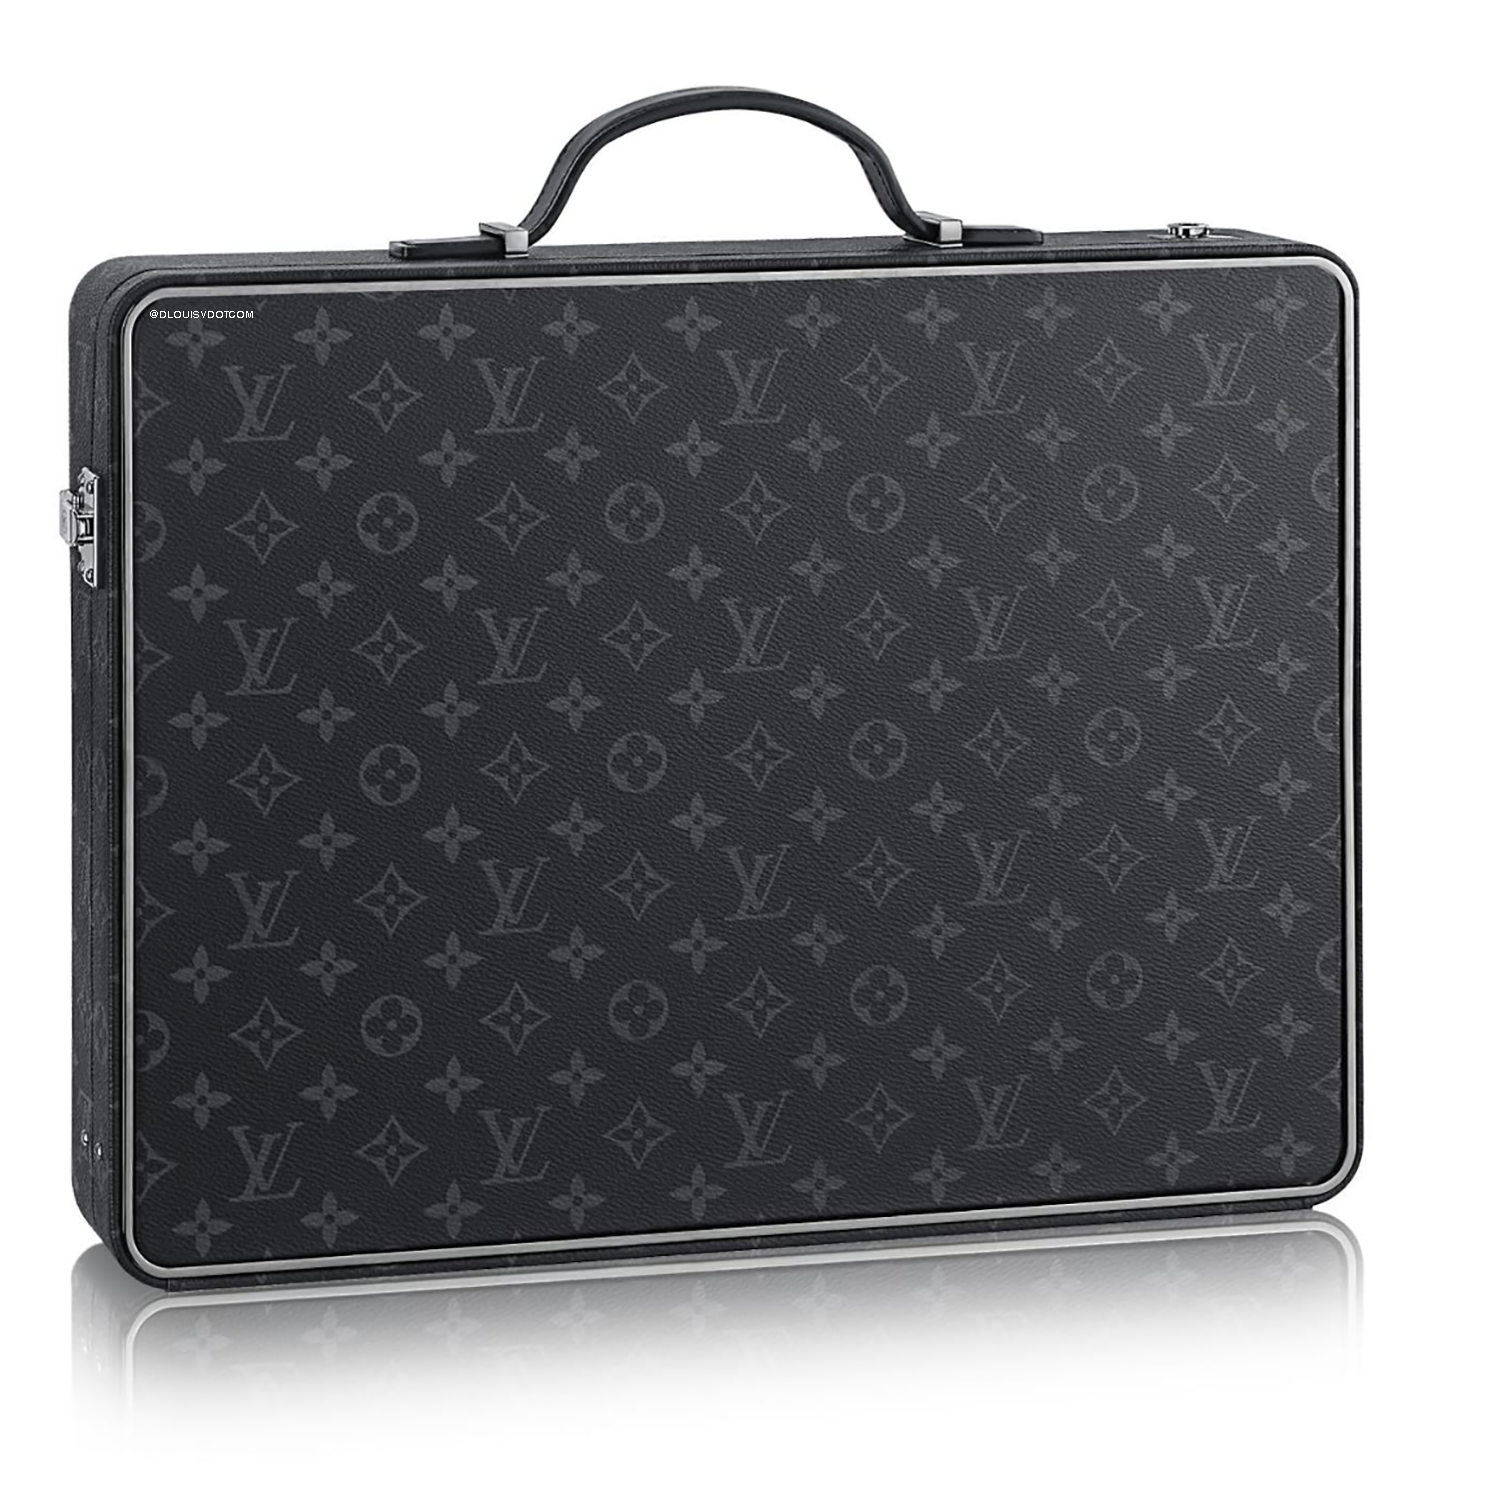 BRIEFCASE - €6200 $M10194MONOGRAM ECLIPSE